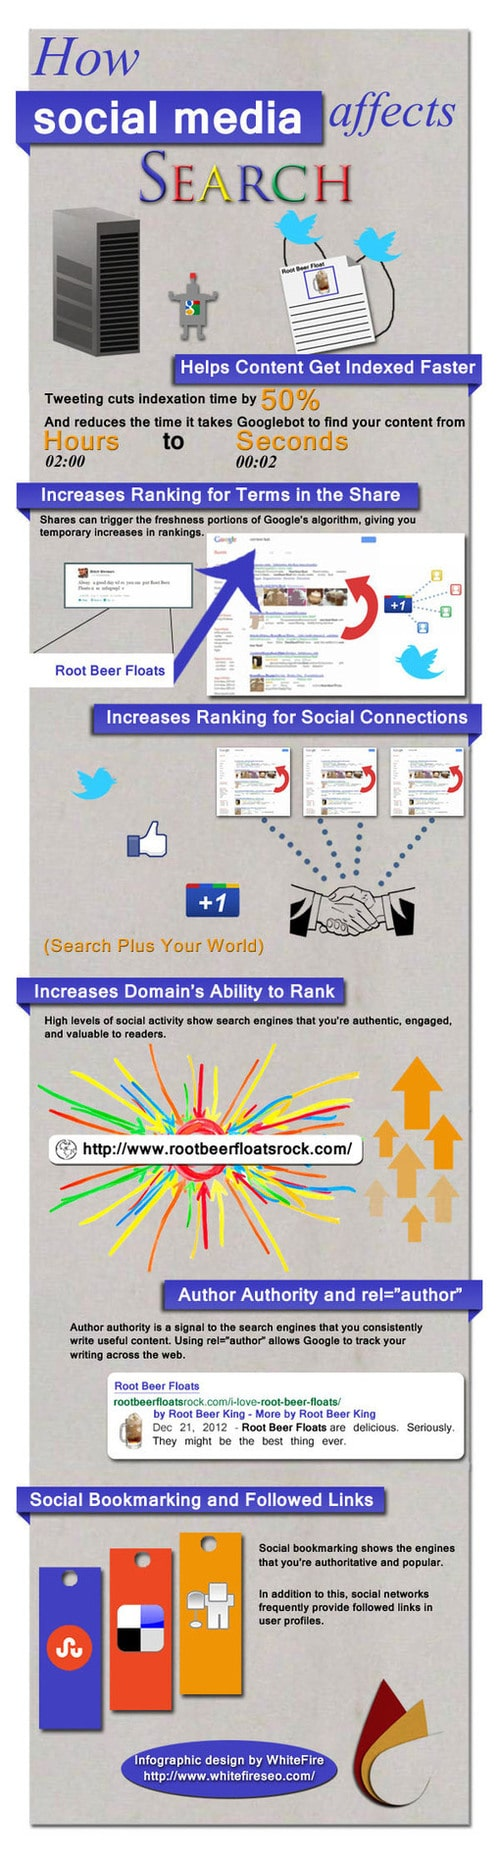 social-media-affects-search-ranking